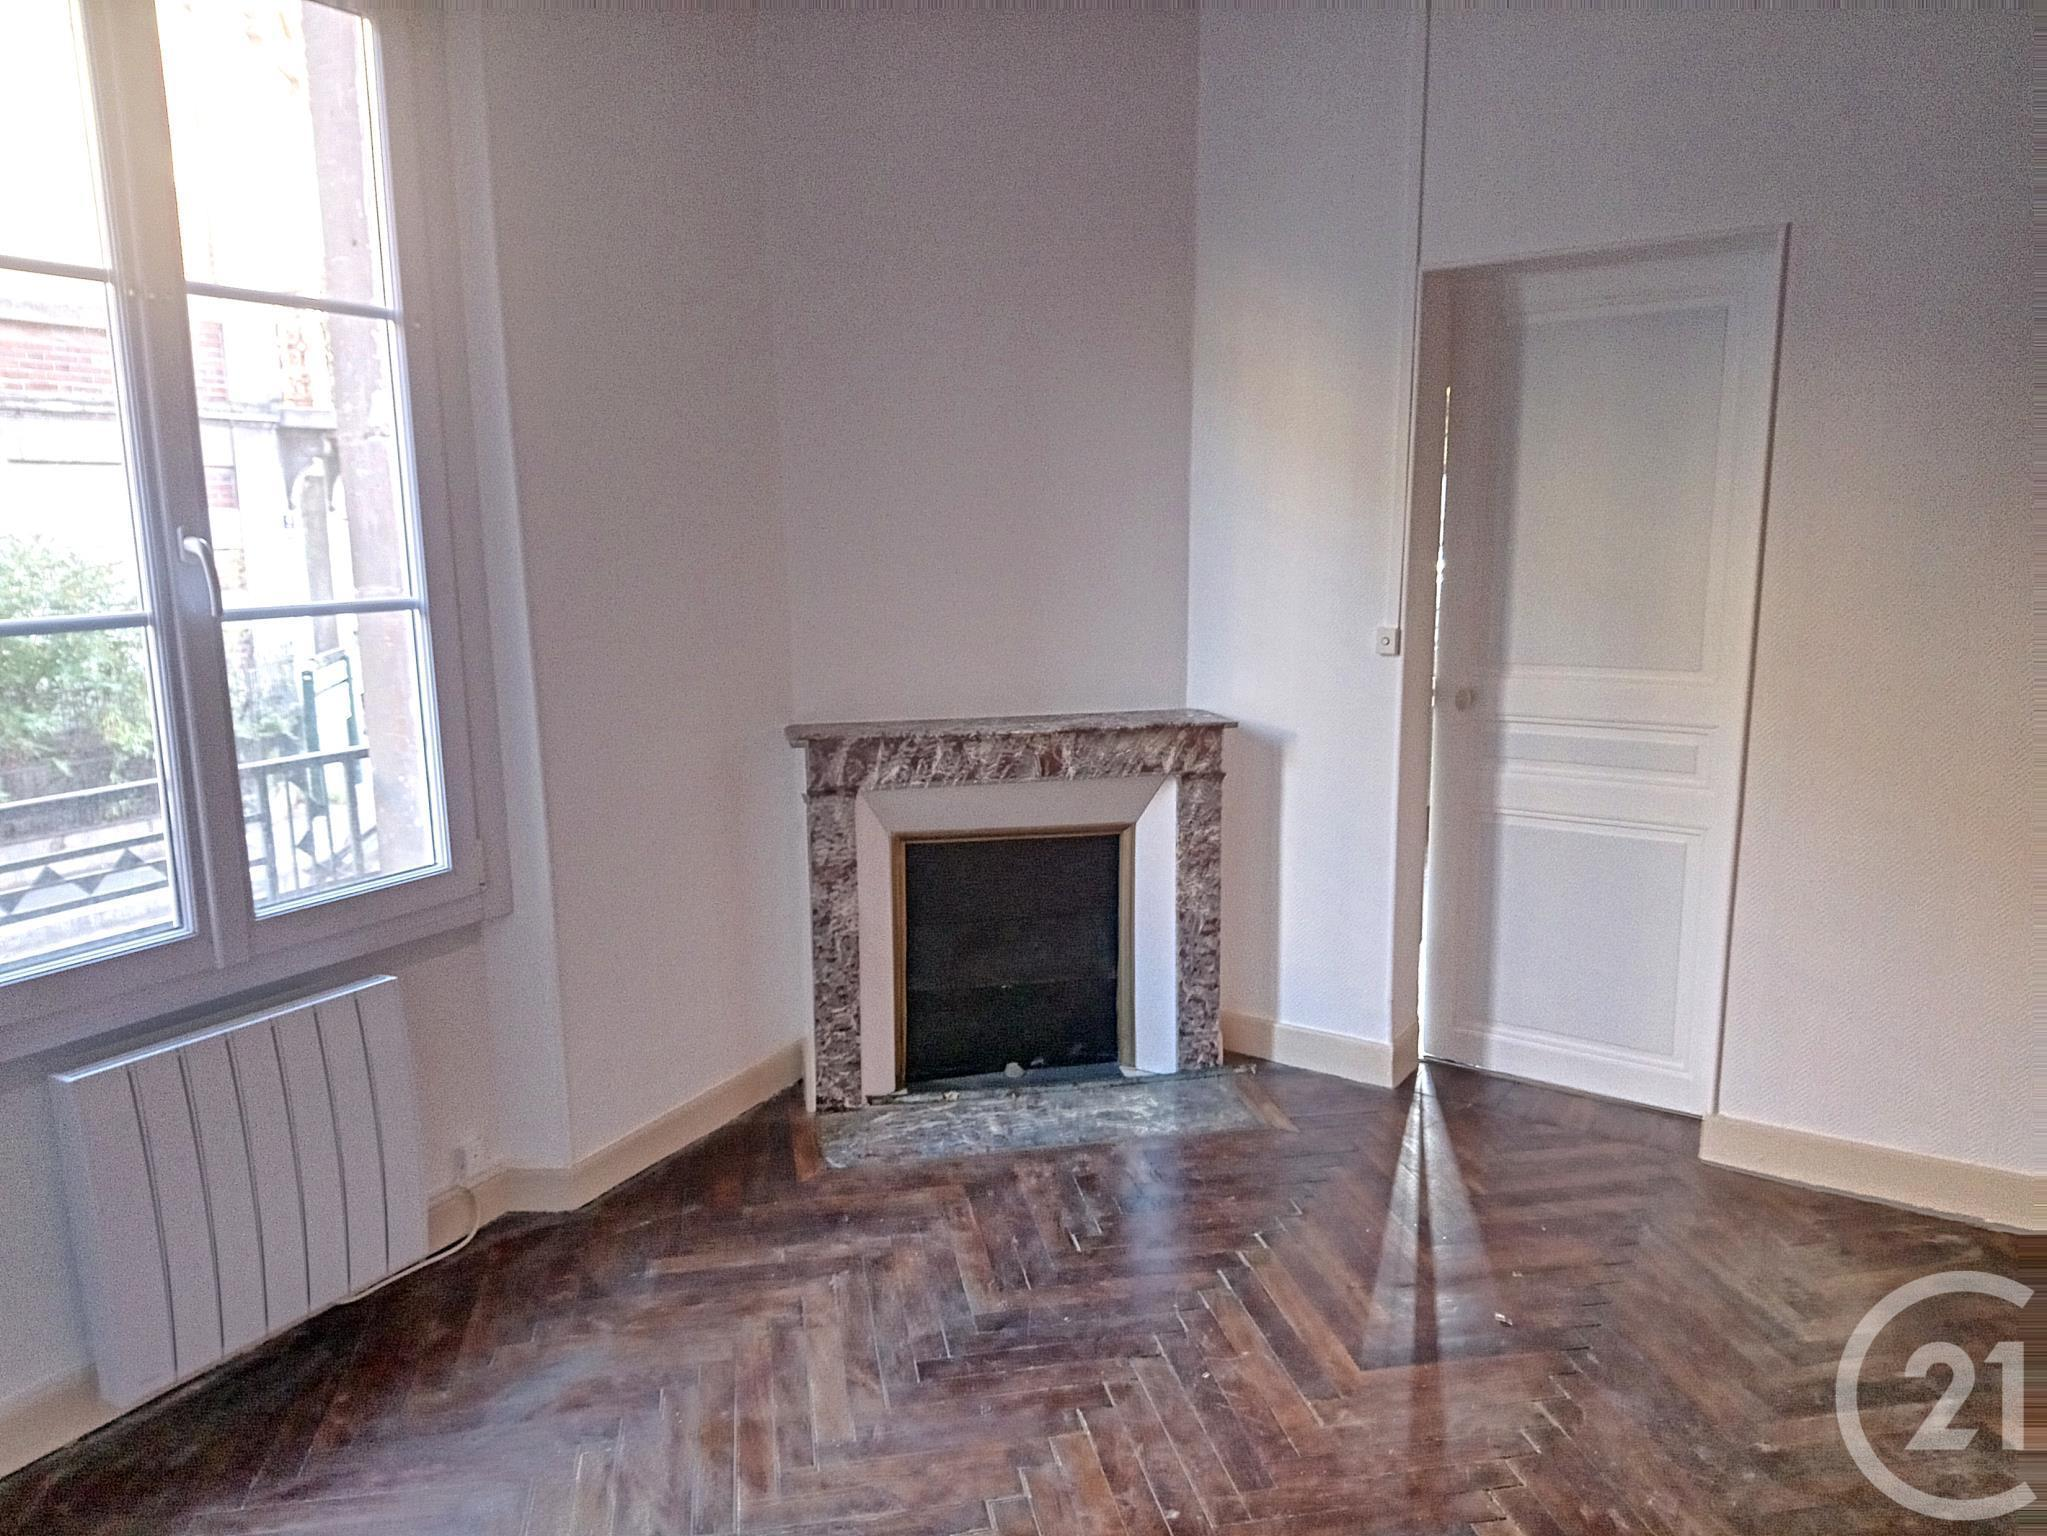 Appartement à vendre - 3 pièces - 47 m2 - EPERNAY - 51 - CHAMPAGNE-ARDENNE